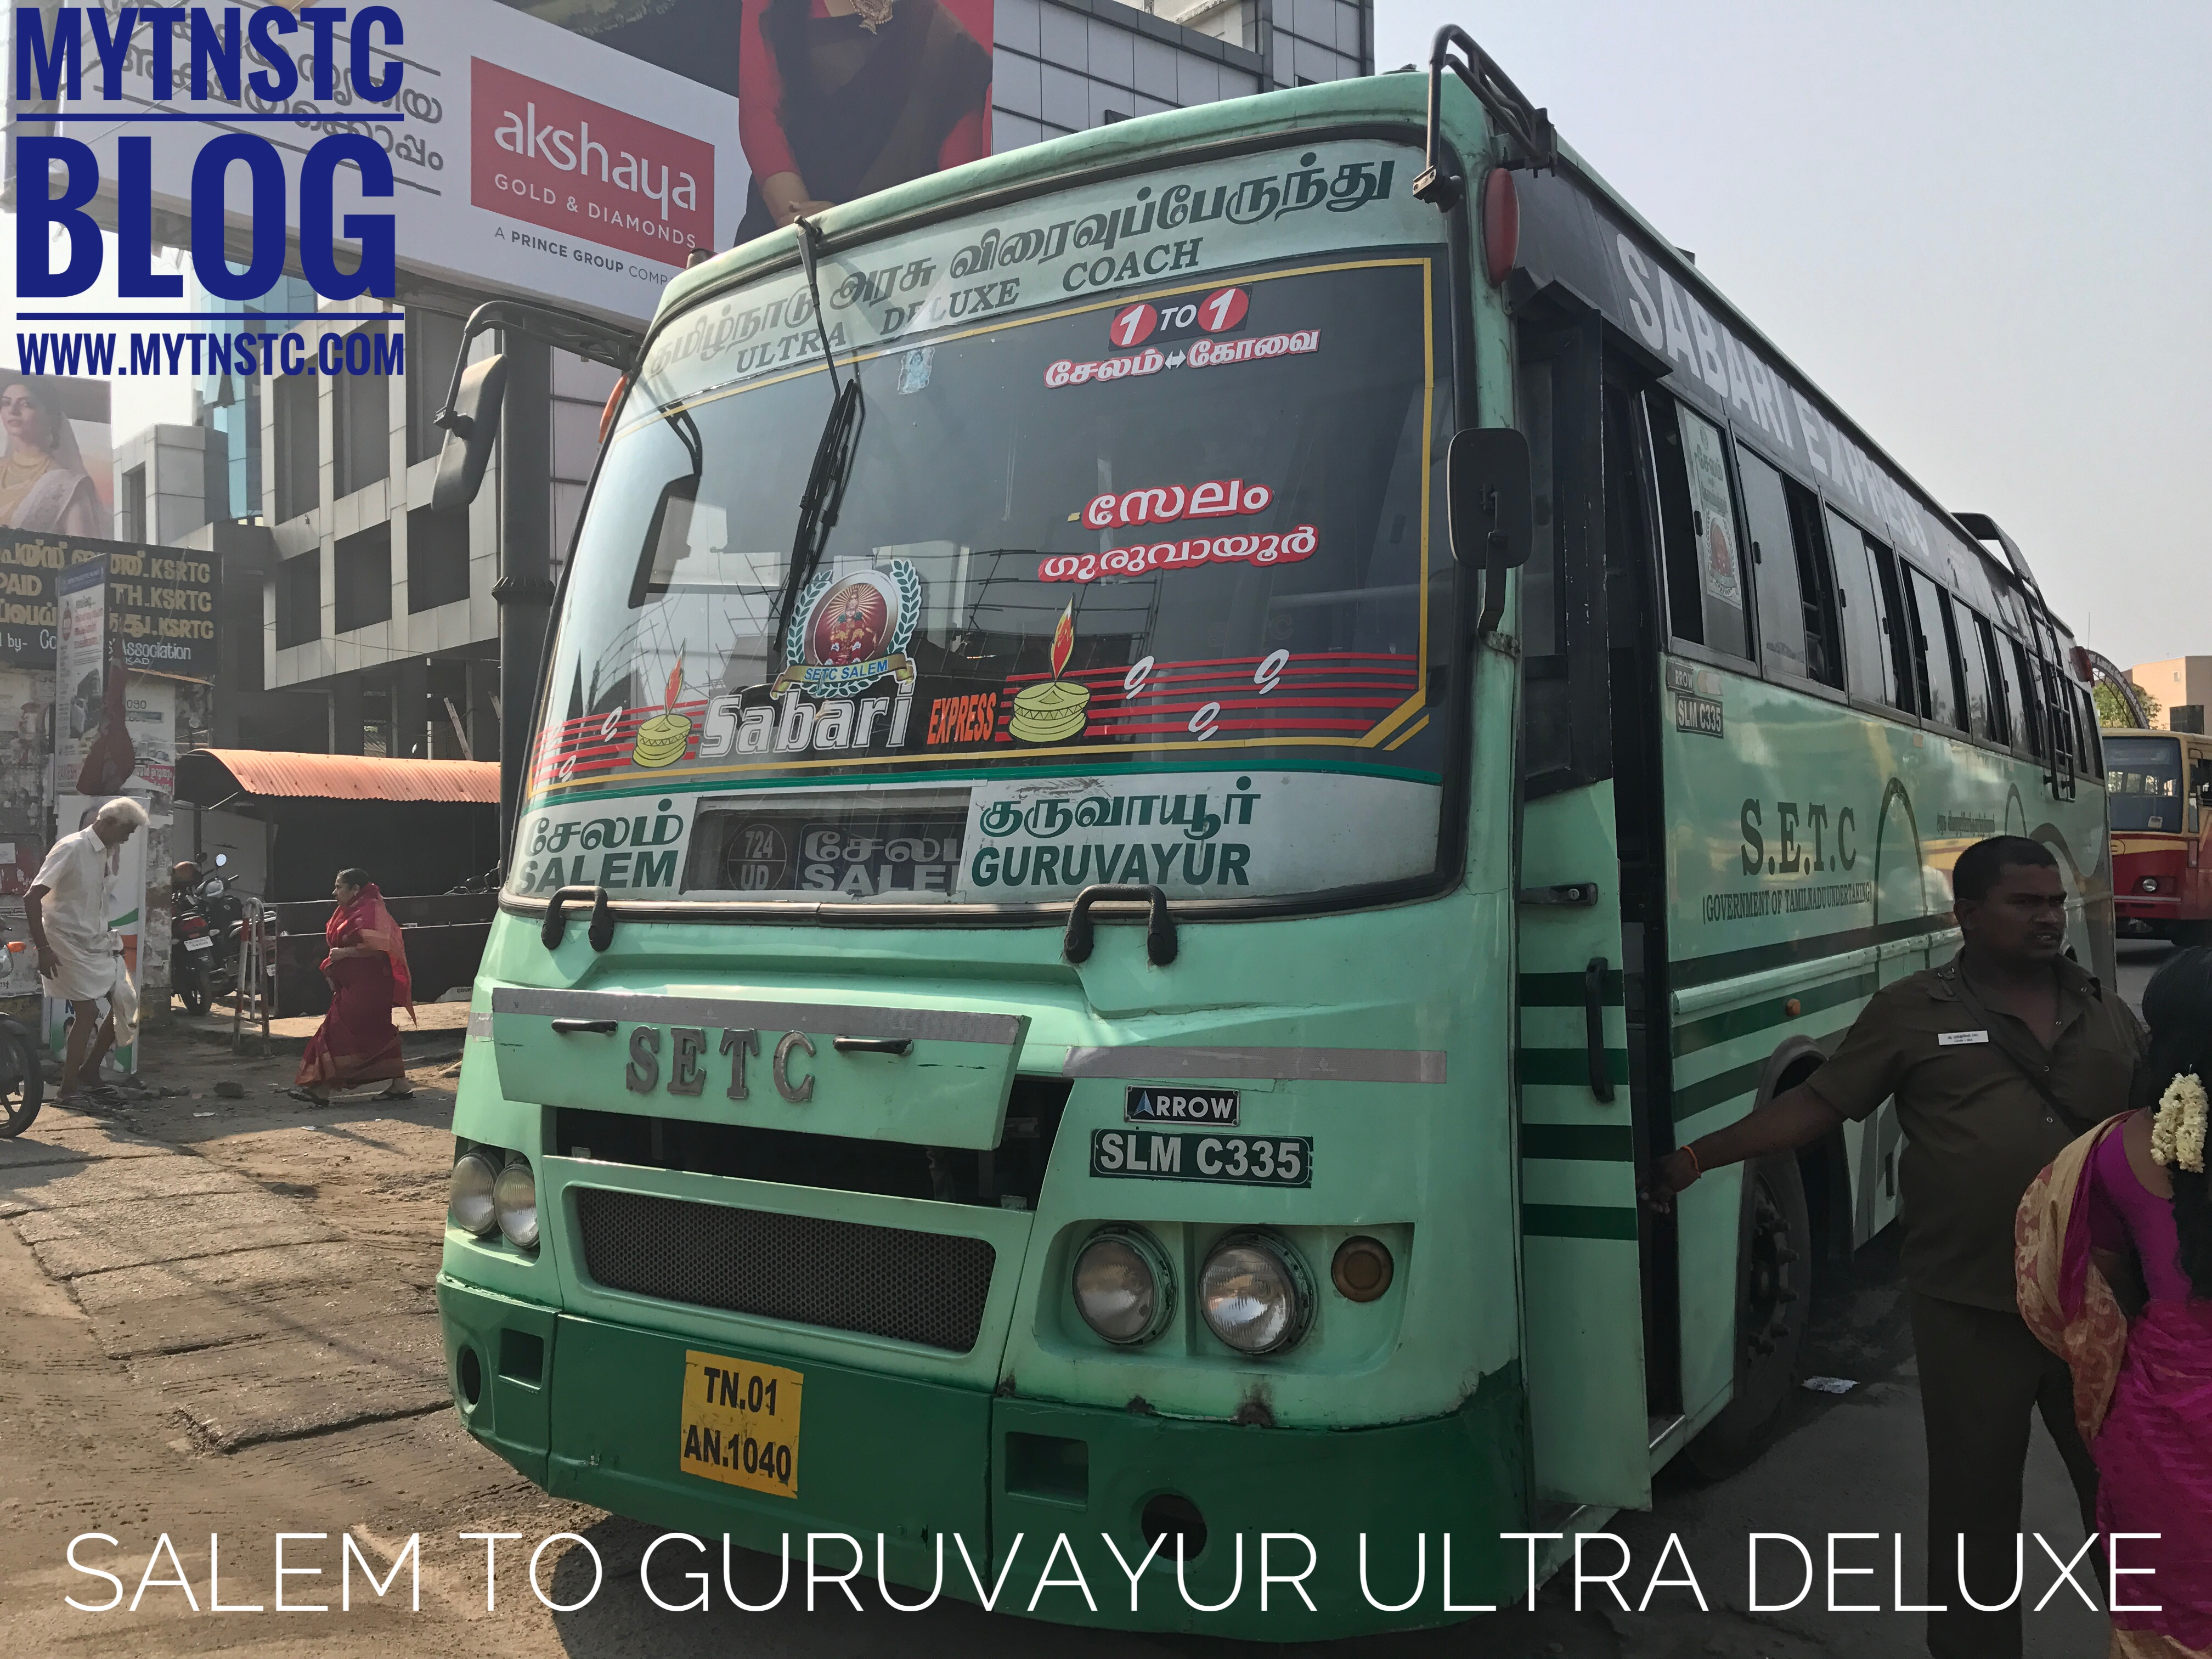 Salem To Guruvayor SETC Bus Service From Tamilnadu